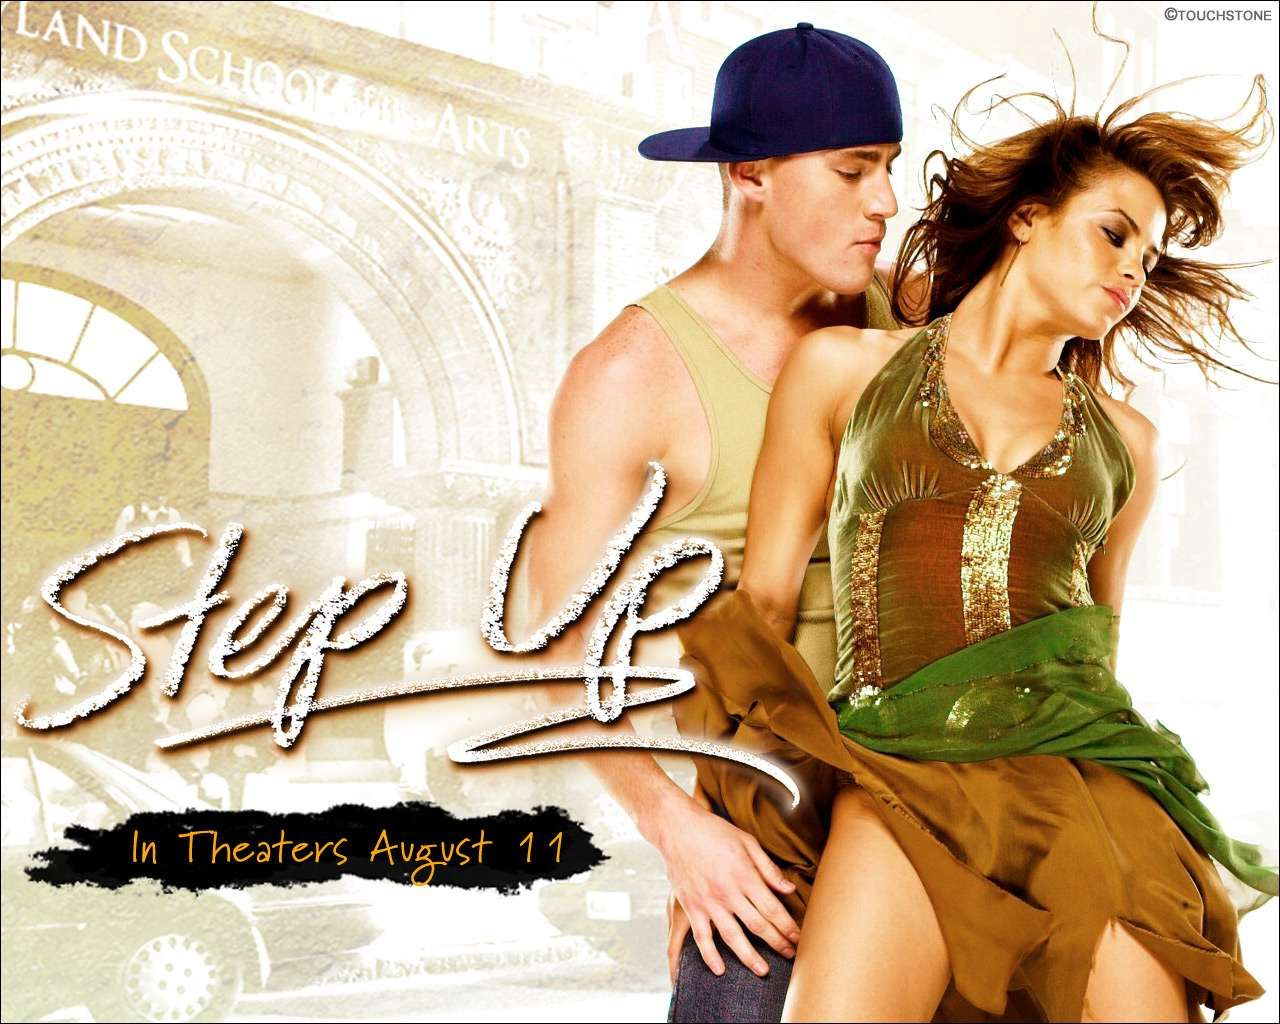 Step Up. They say that those who dance together, stay together and I love that it's true for Channing Tatum and Jenna Dewan.